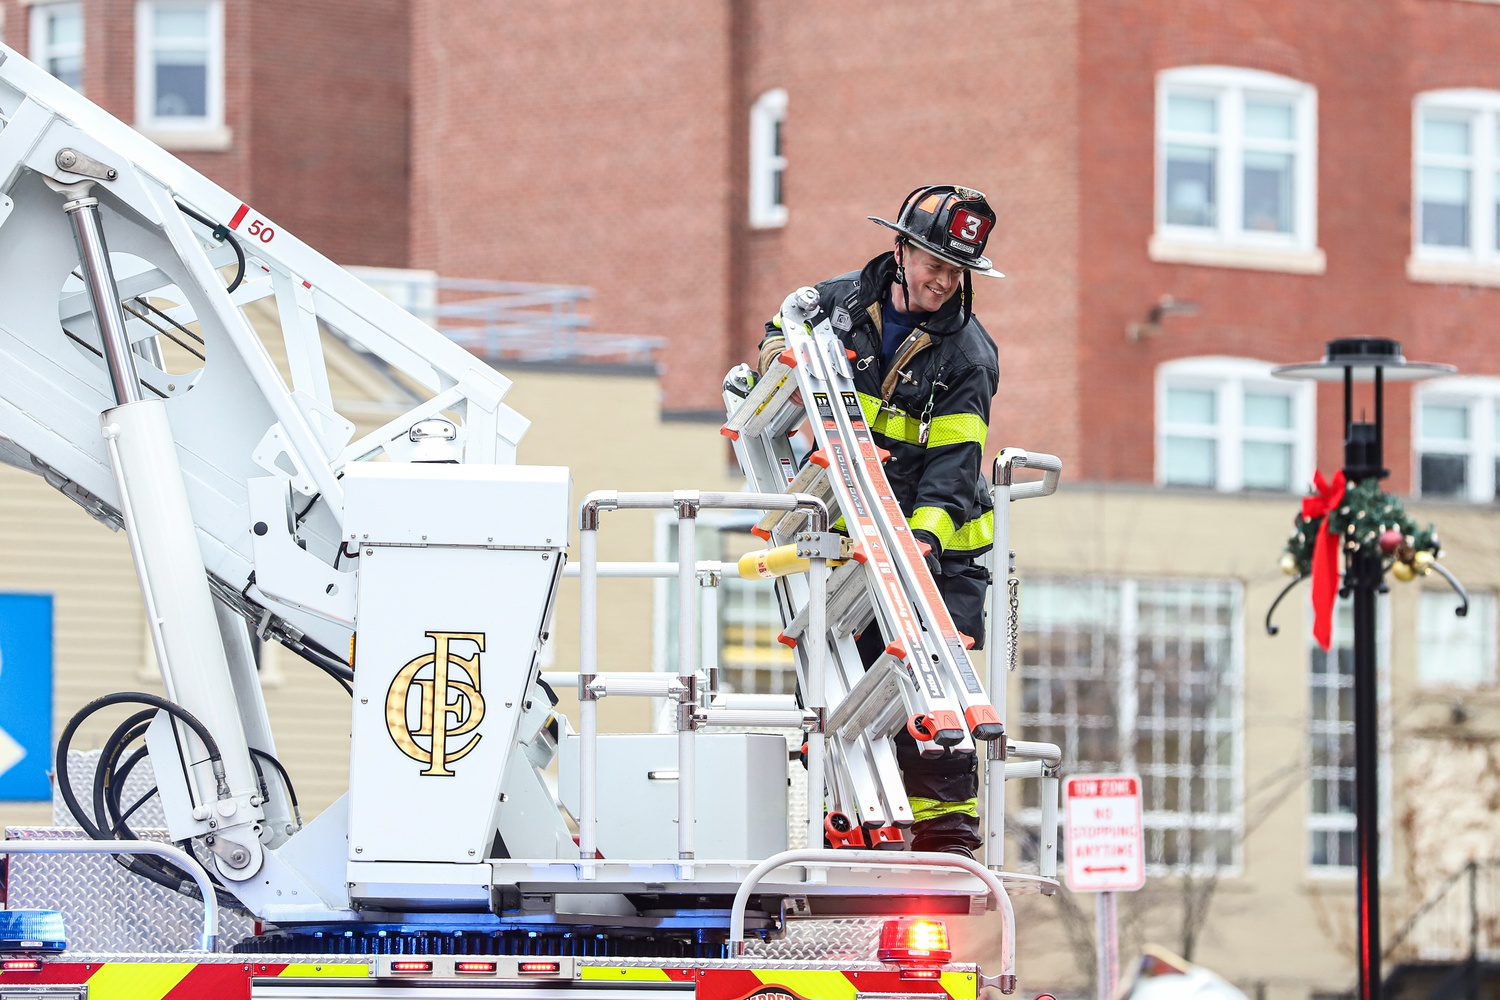 At least 40 firefighters were deployed to respond to a fire in the exhaust duct of the shared Border Cafe and Harvard Global Health Institute building at 32 Church St. Sunday afternoon.